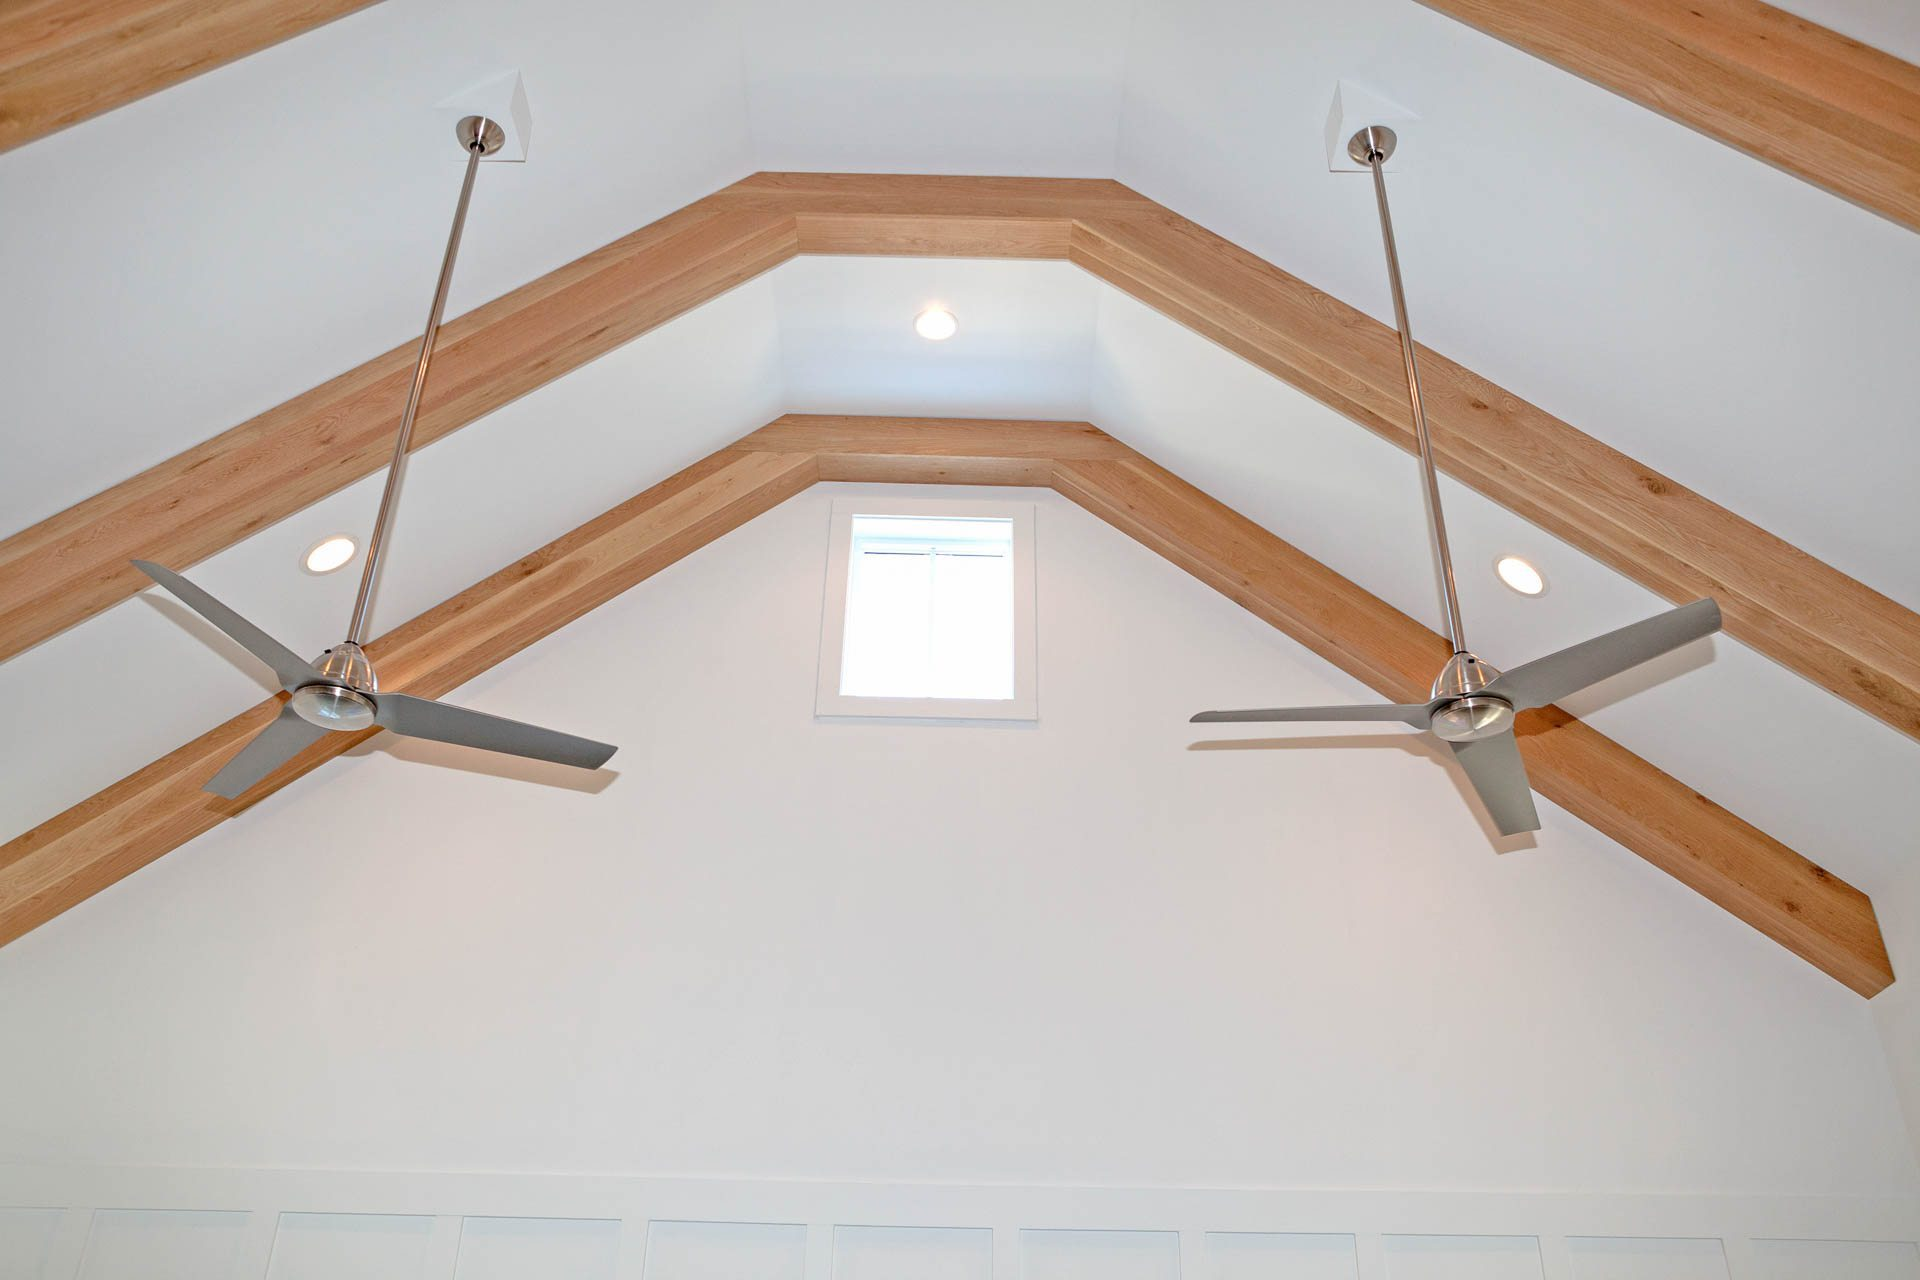 Detail showing ceiling exposed beams.